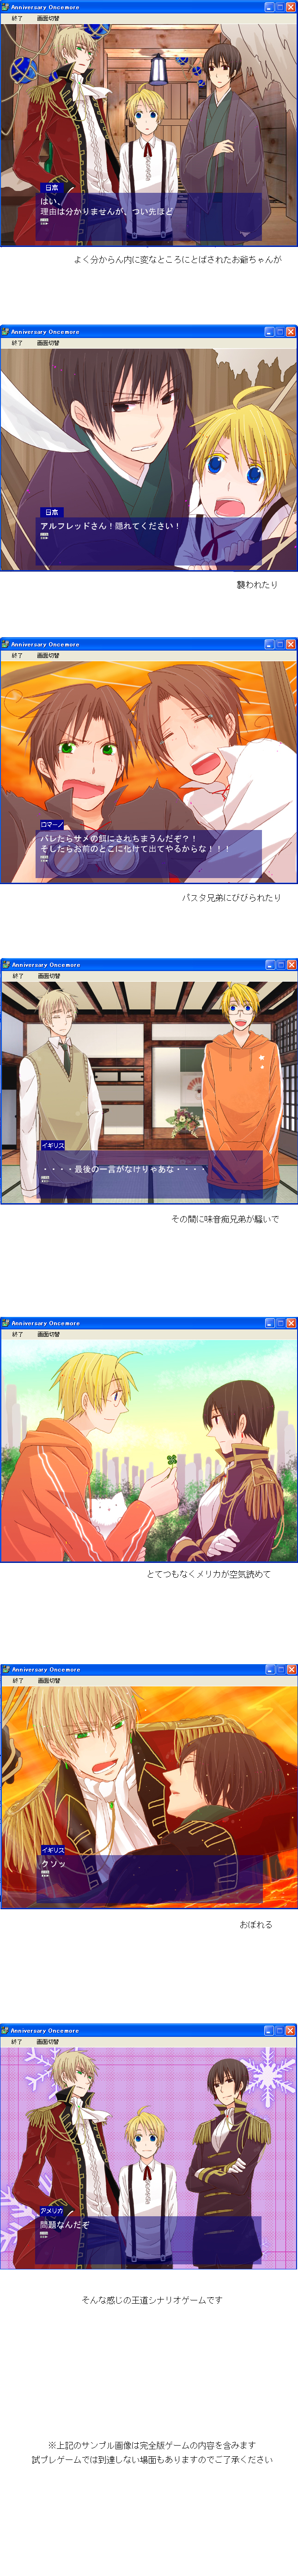 Tags: Anime, Pixiv Id 31576, Pixiv Id 931576, Axis Powers: Hetalia, North Italy, Japan, South Italy, United Kingdom, Pochi-kun, United States, Binoculars, Mediterranean Countries, Axis Power Countries